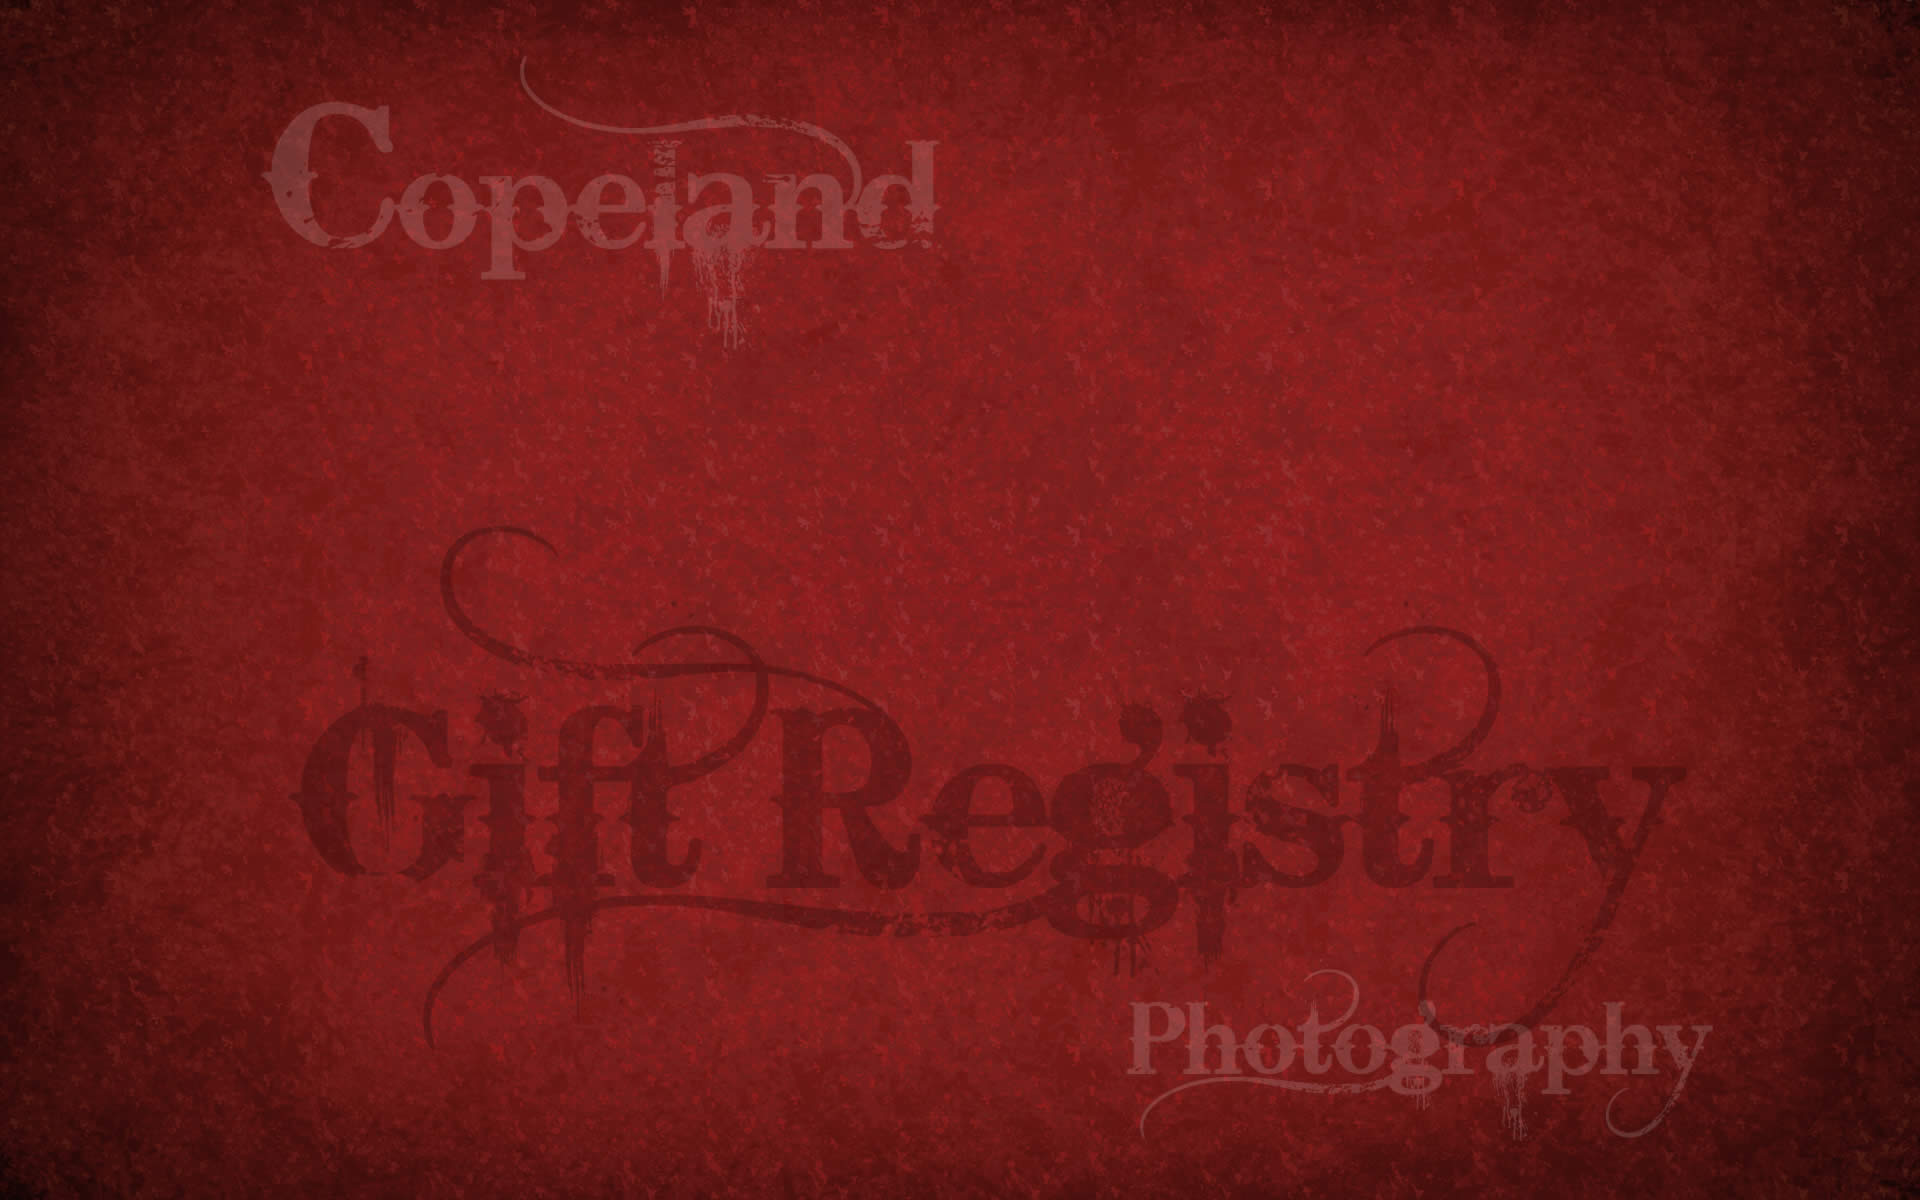 Copeland Photography Gift Registry